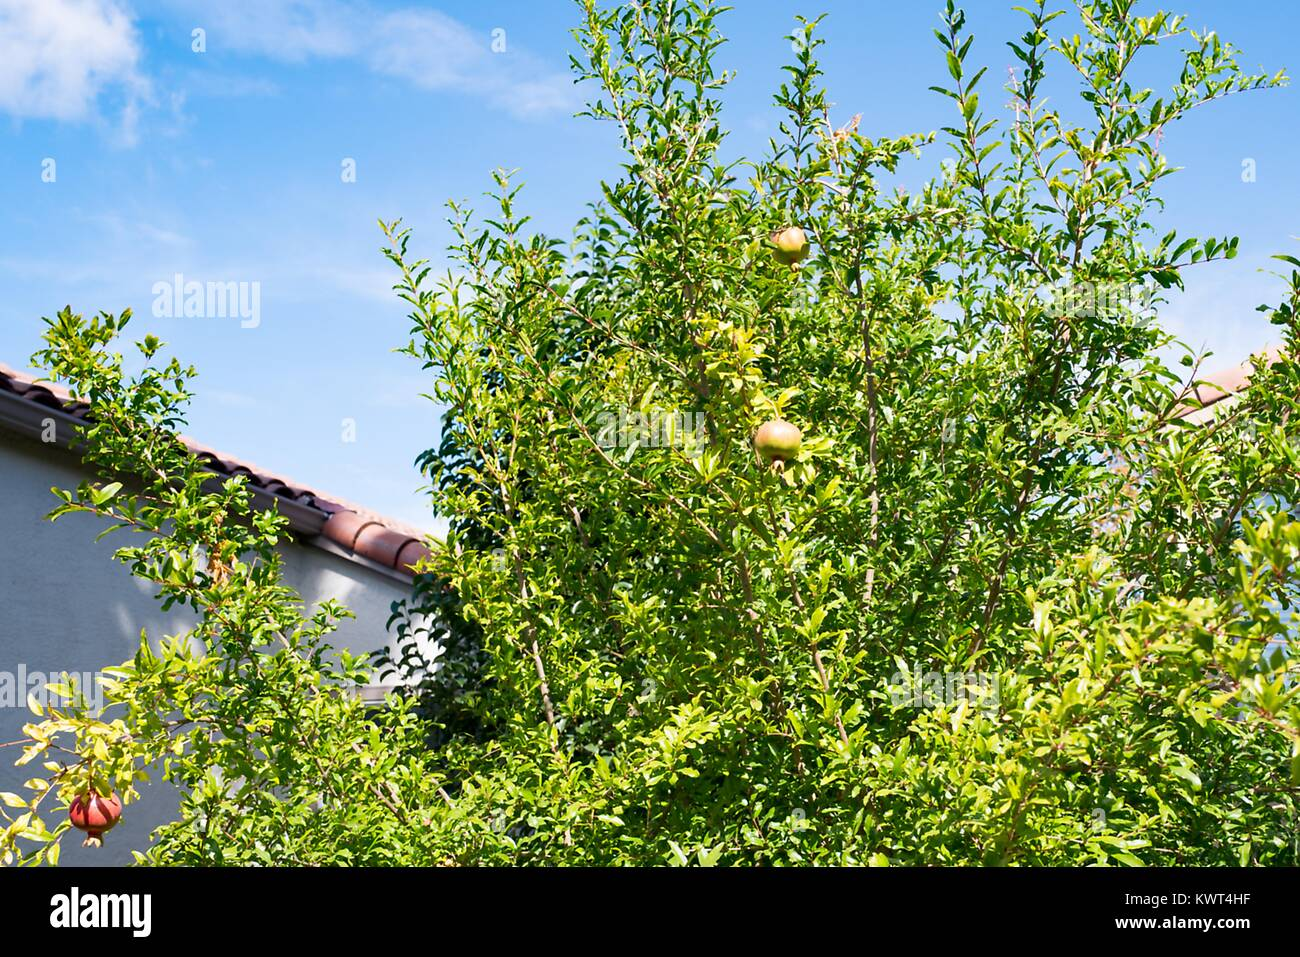 Pomegranates growing on a tree against a blue sky during the Jewish holiday of Rosh Hashanah, September 21, 2017. - Stock Image